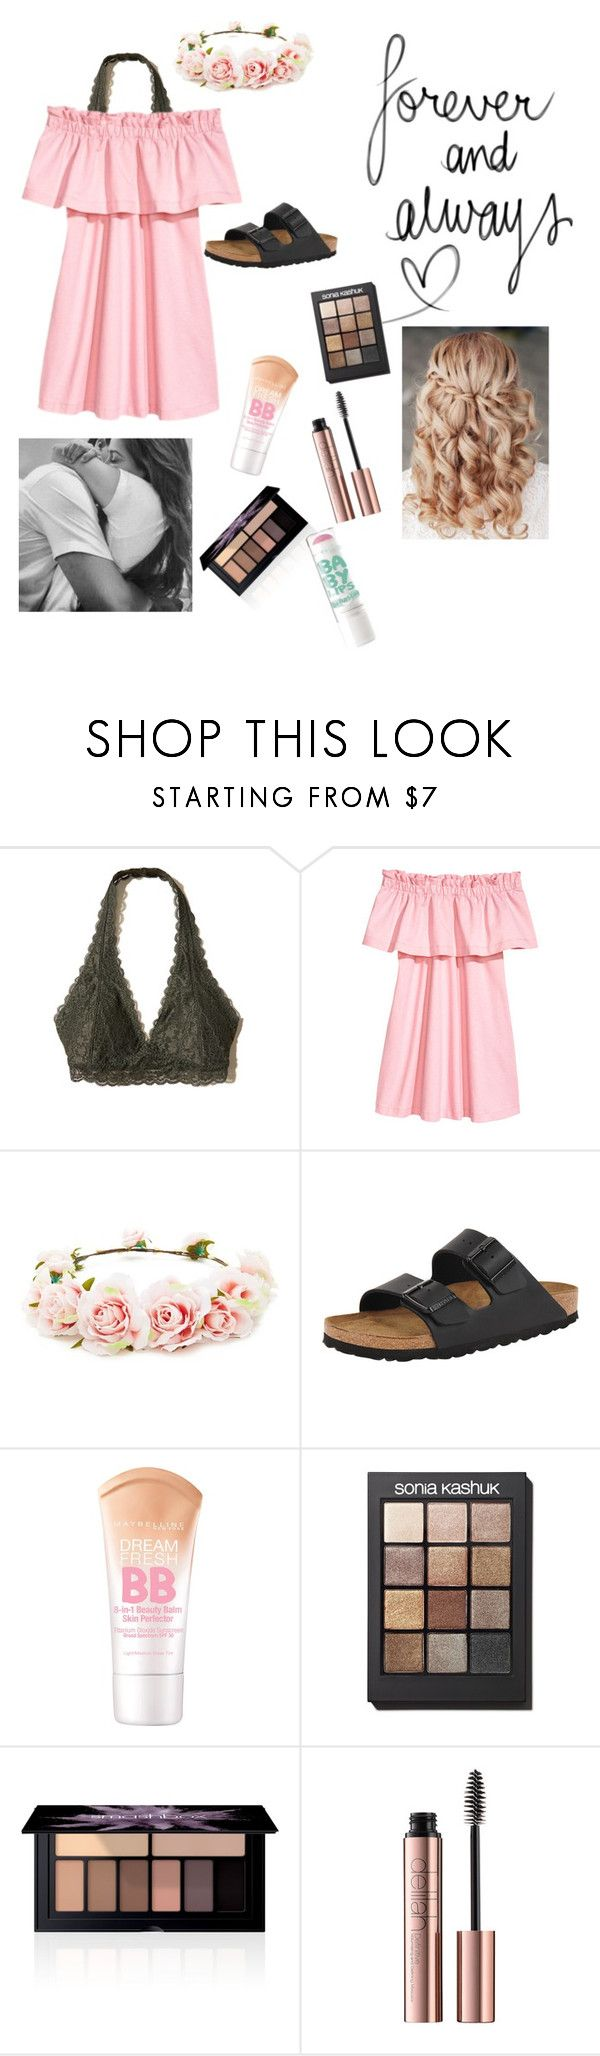 """""""Cute guys at swim camp!! """" by emily-wollan ❤ liked on Polyvore featuring Hollister Co., Forever 21, Birkenstock, Retrò, Maybelline, Sonia Kashuk and Smashbox"""